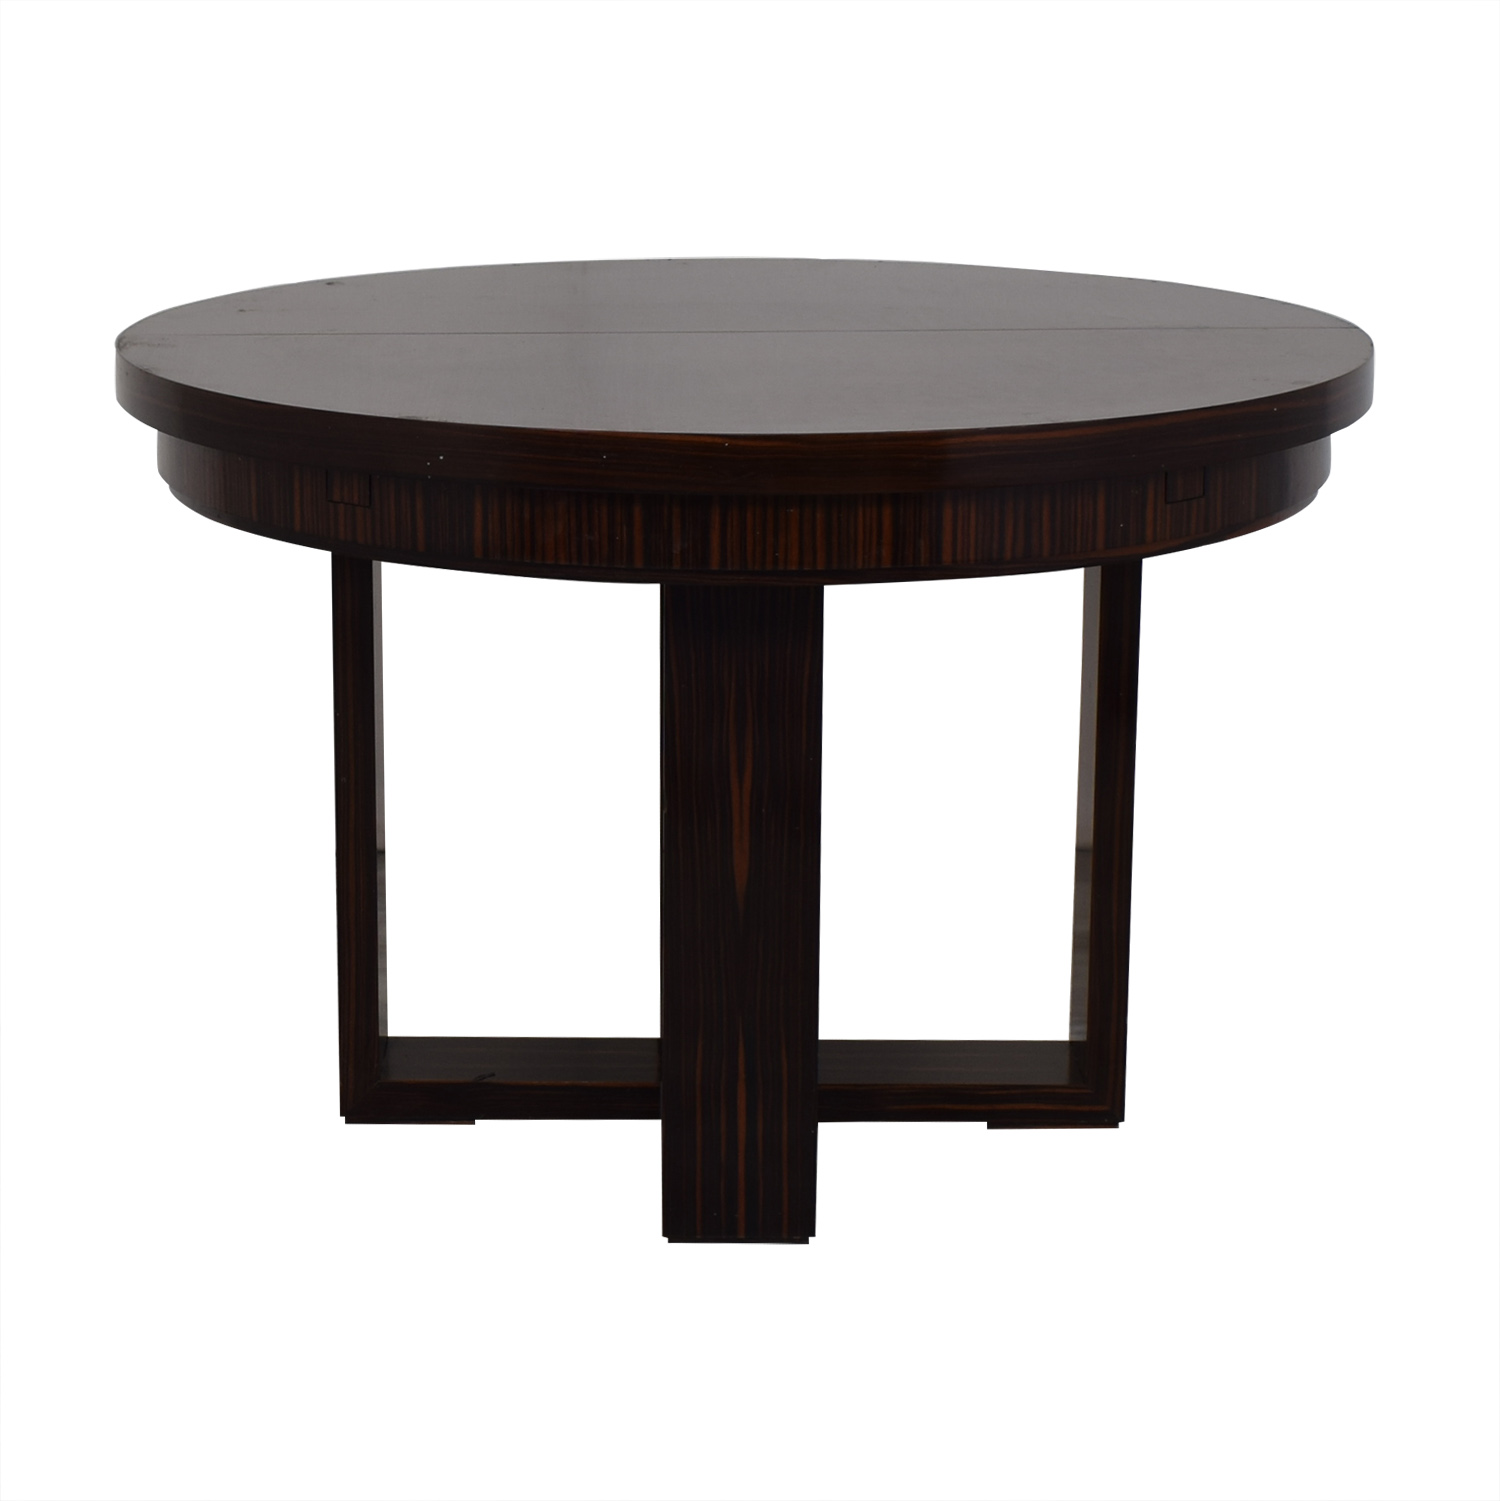 Annibale Colombo Annibale Colombo Extension Dining Table price